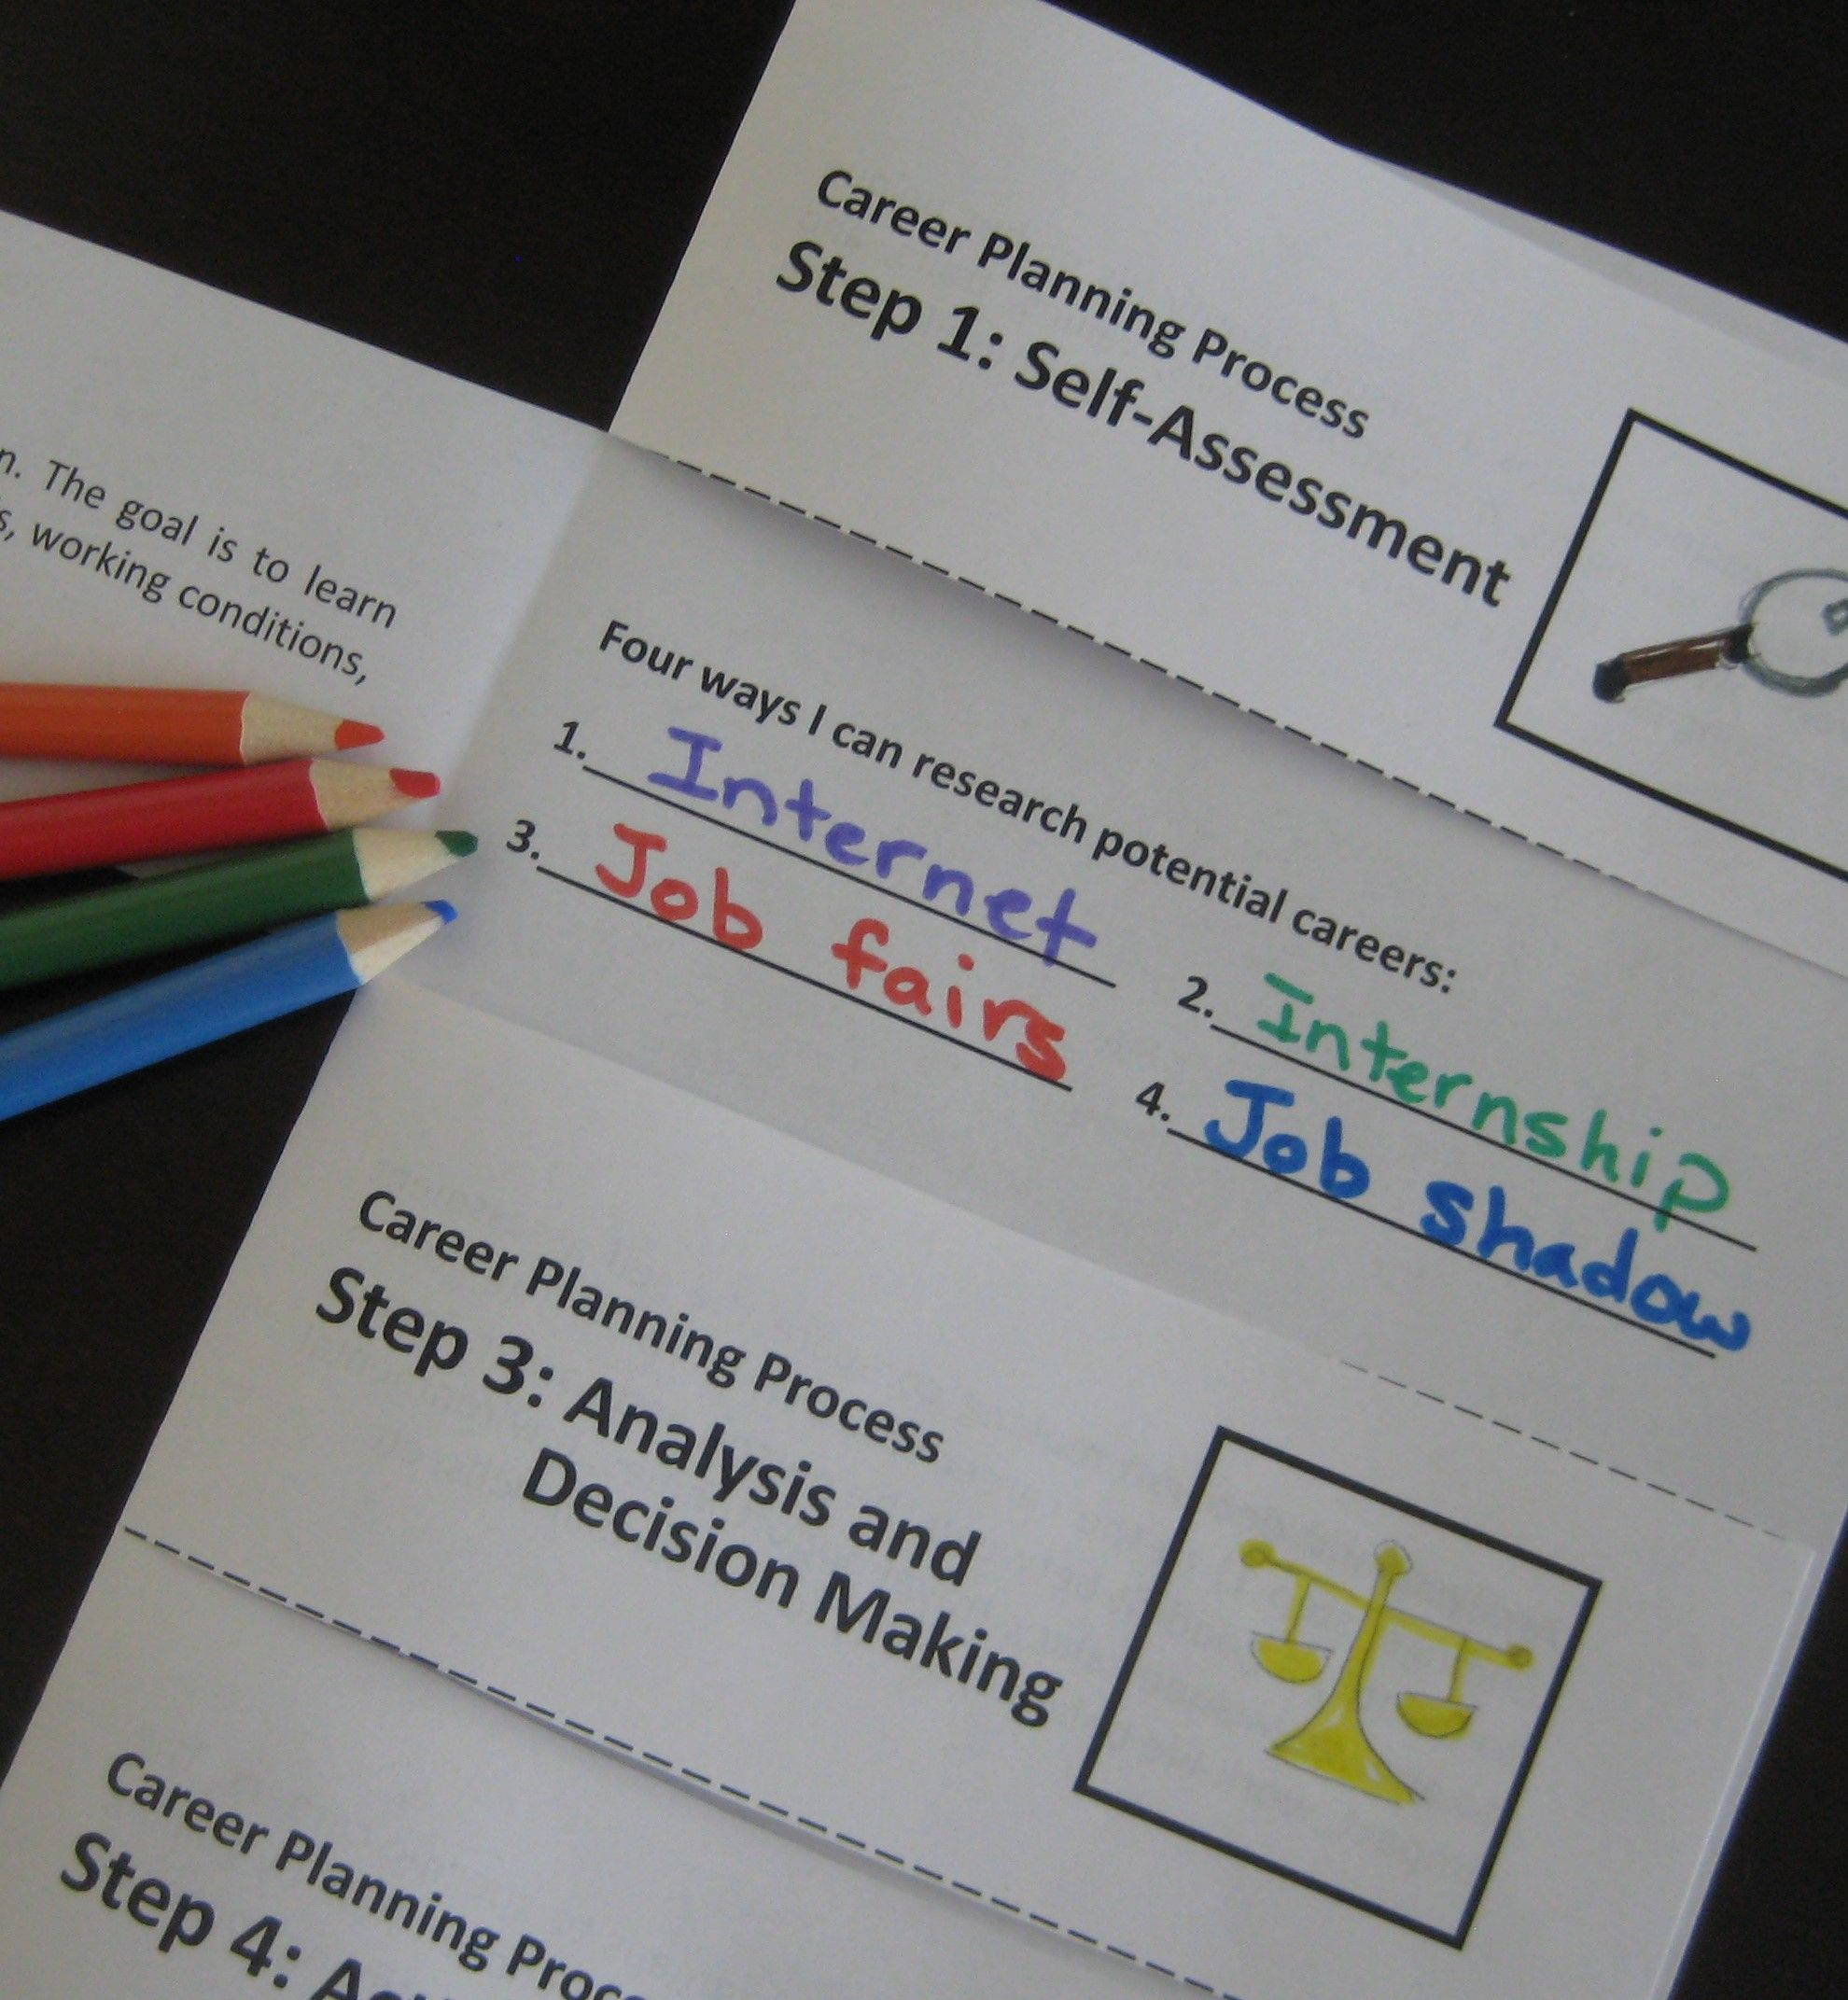 Hands On Career Planning Process Activity Enables Students